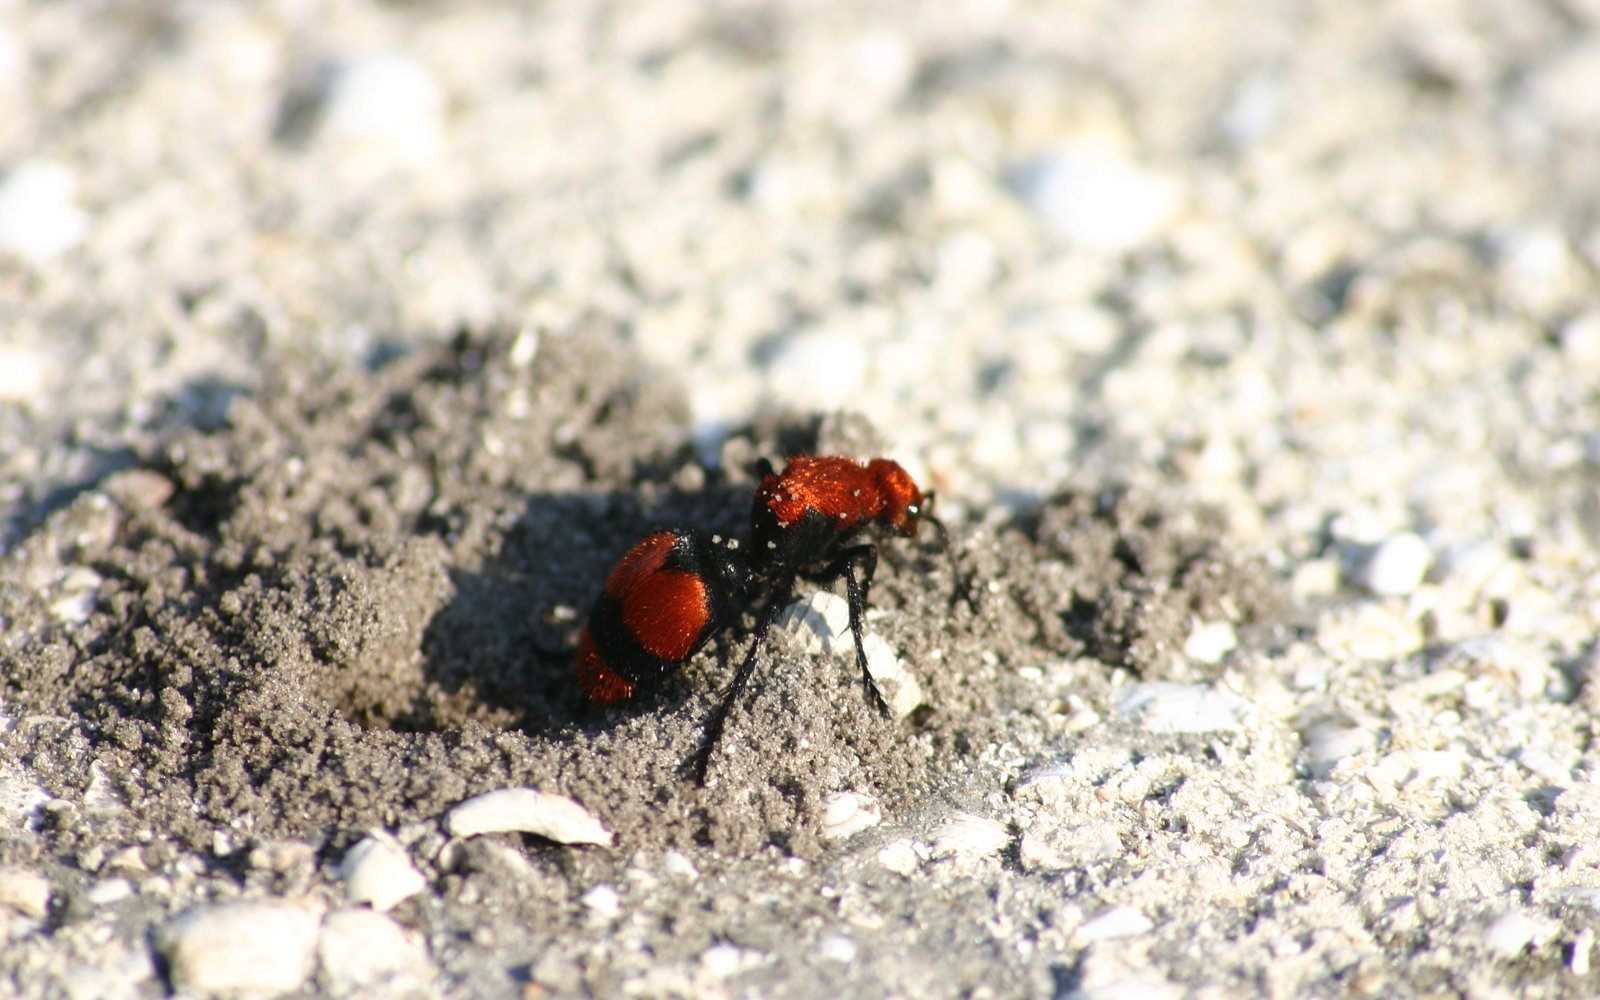 Cow Killer Ant